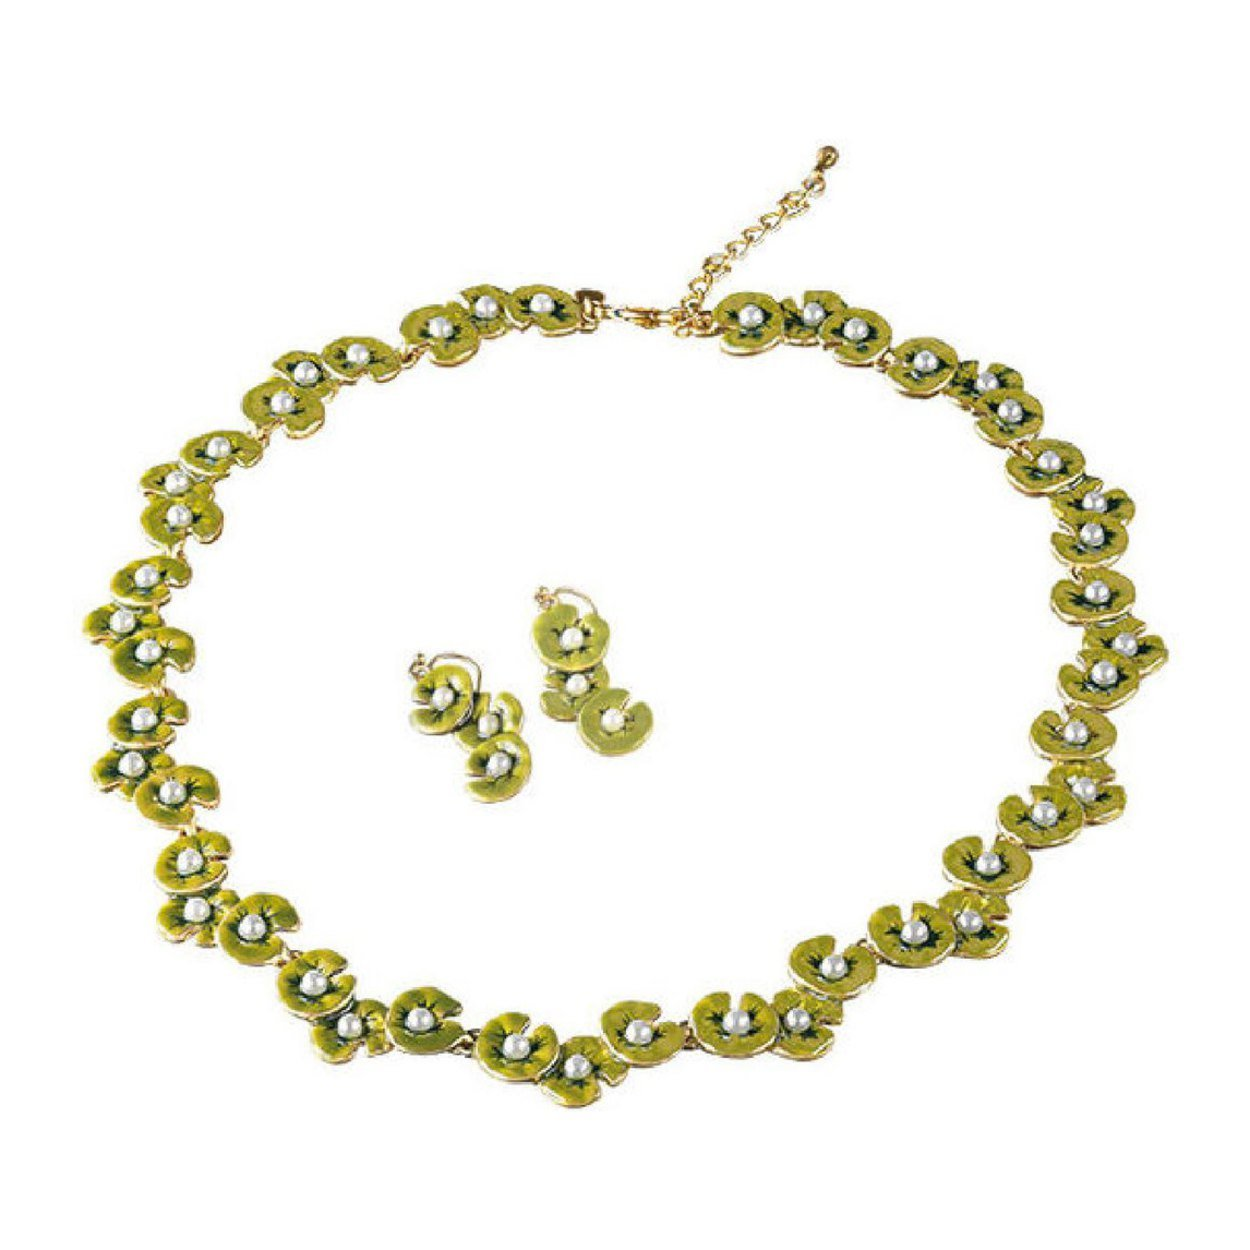 Claude Monet Water Lilies Green Enamel Glass Pearl Lotus Necklace and Earrings Set - Pricegems Museum Store Collection